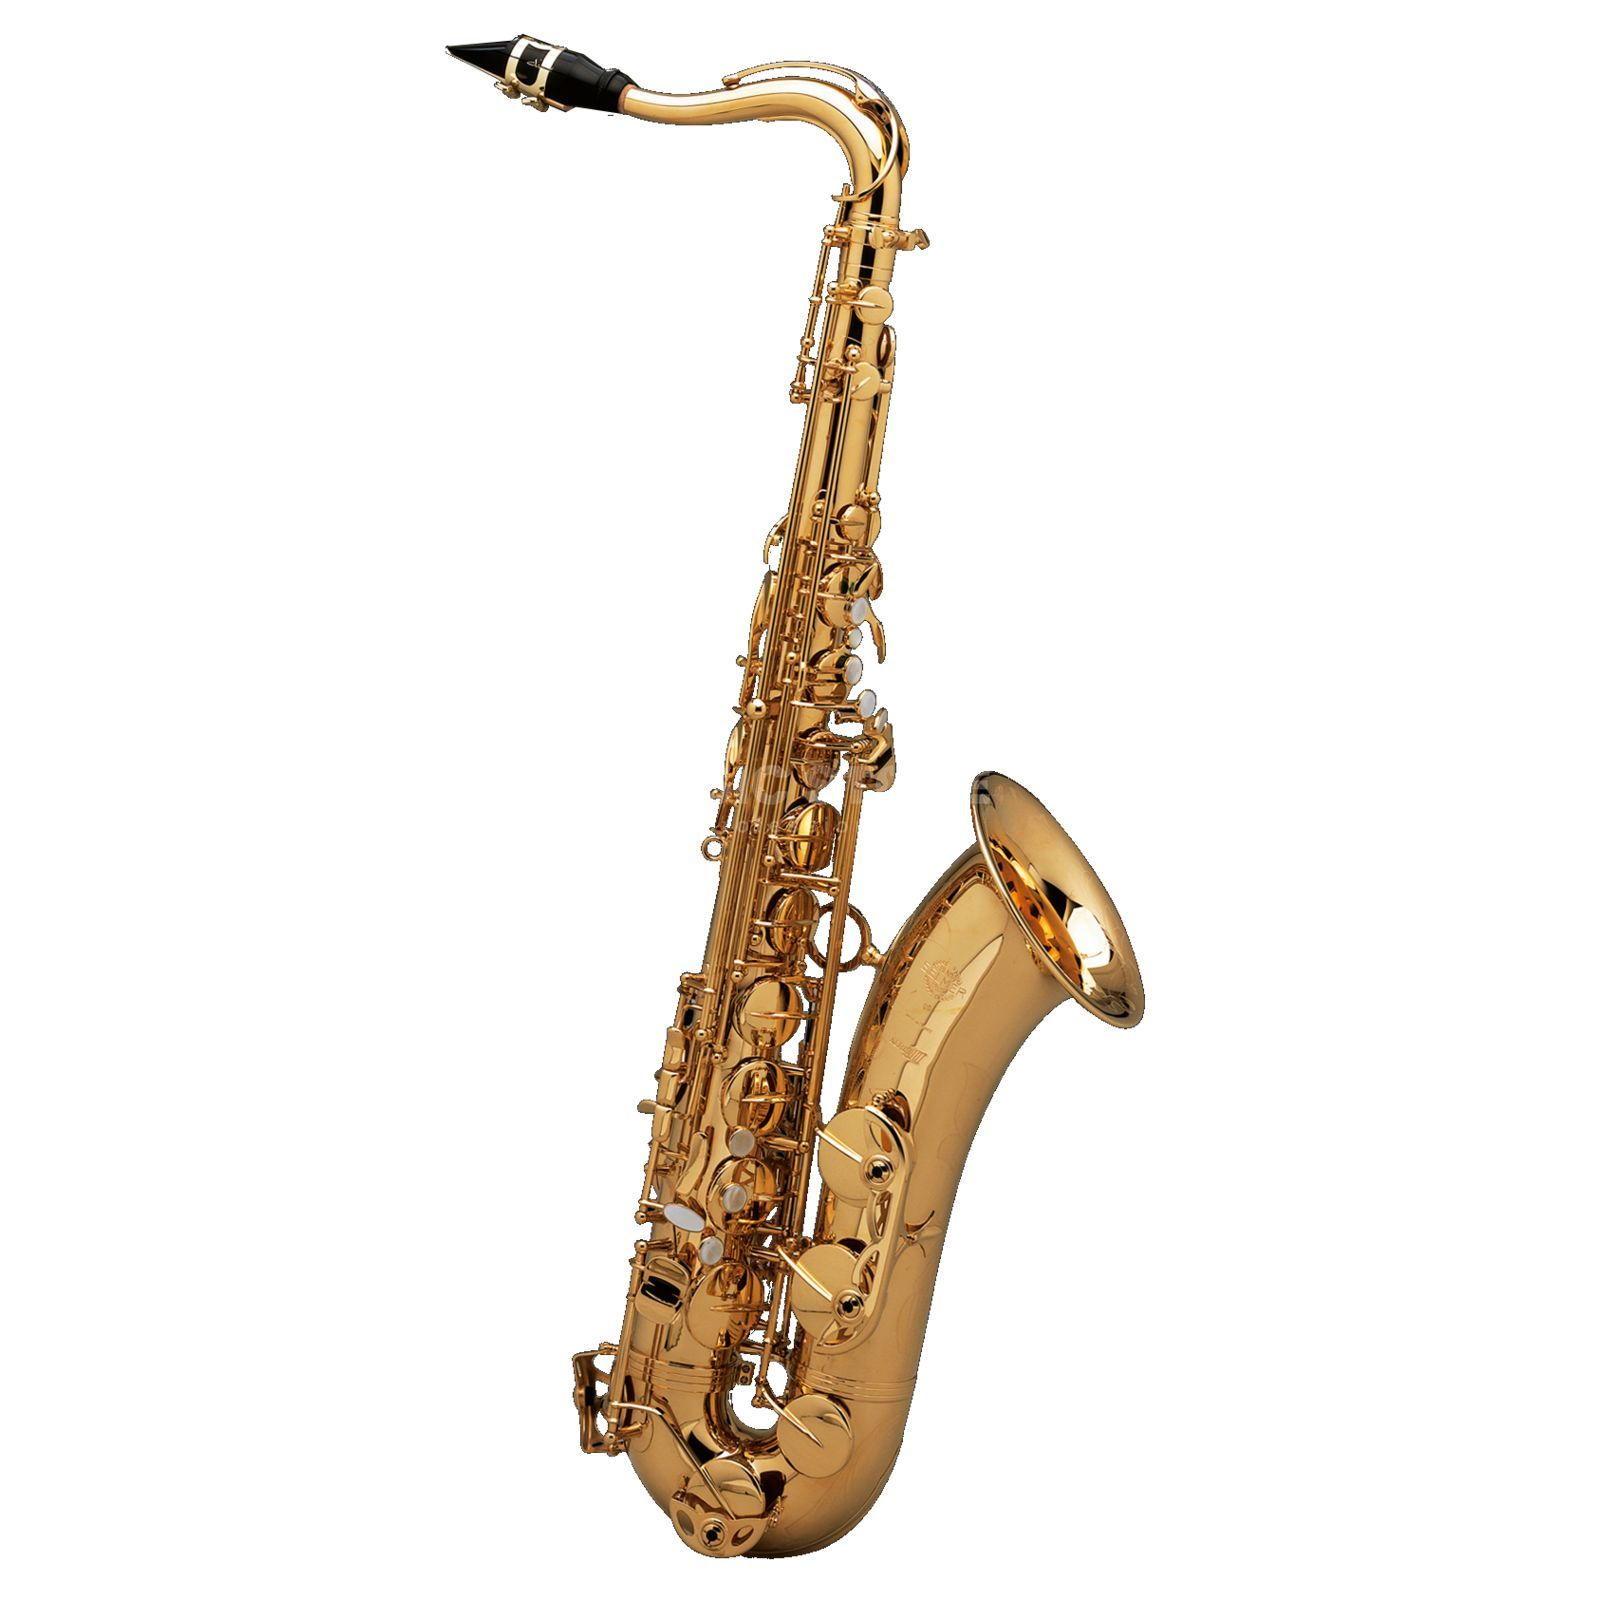 Selmer SE-T3L Tenor Saxophone Series III - Gold with engraving Изображение товара